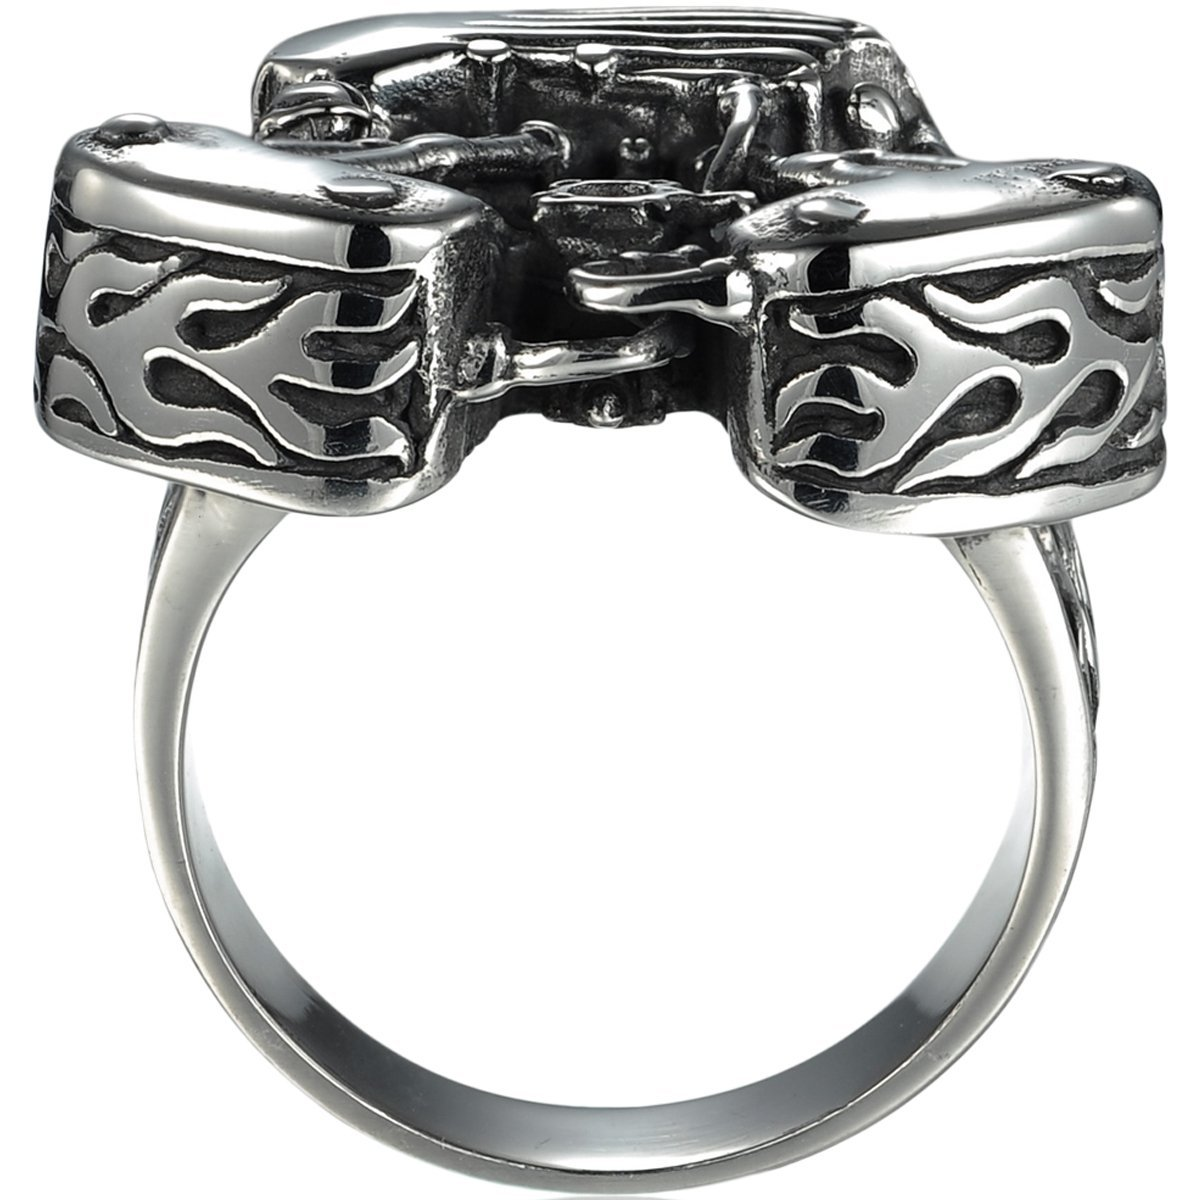 HooAMI Men's Stainless Steel Motorcycle Engine Biker Ring Black Silver,Size 13 by HooAMI (Image #2)